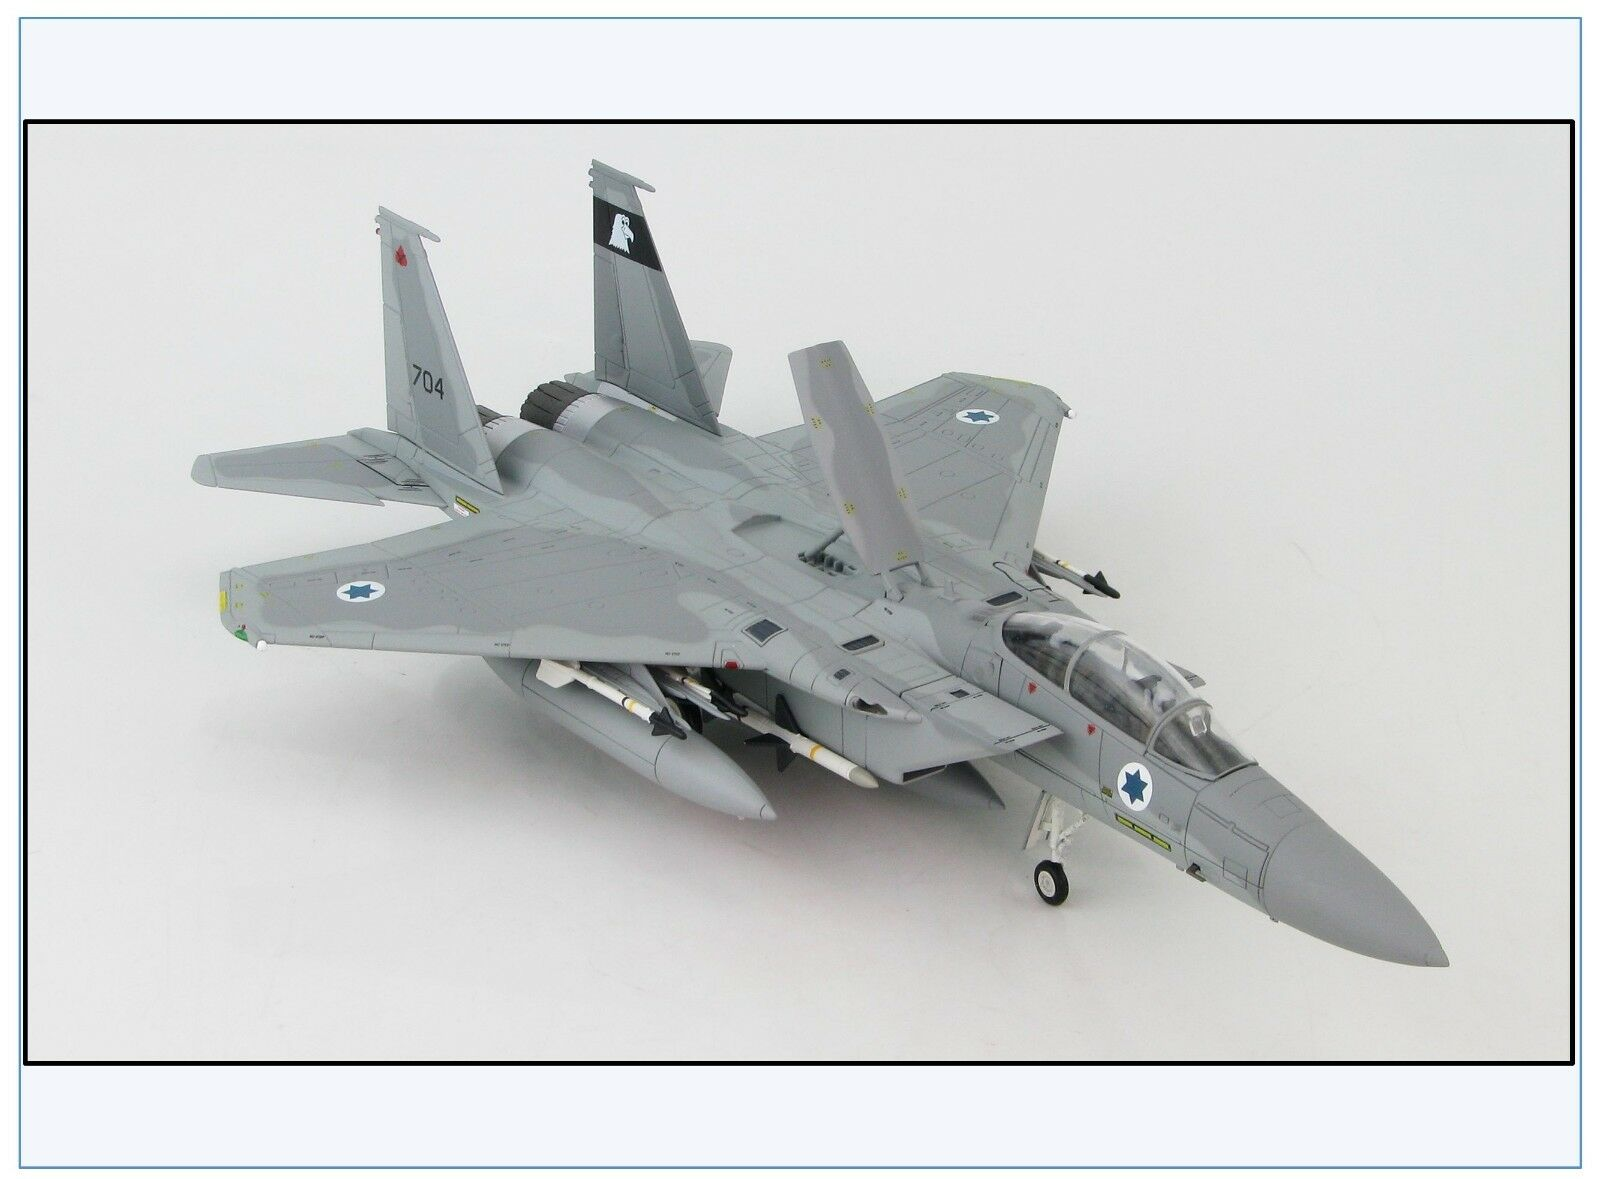 Ha4505 f-15b Eagle  BAZ  Israël Air Force  704, 1978, HOBBY MASTER 1 72 Nouveau &